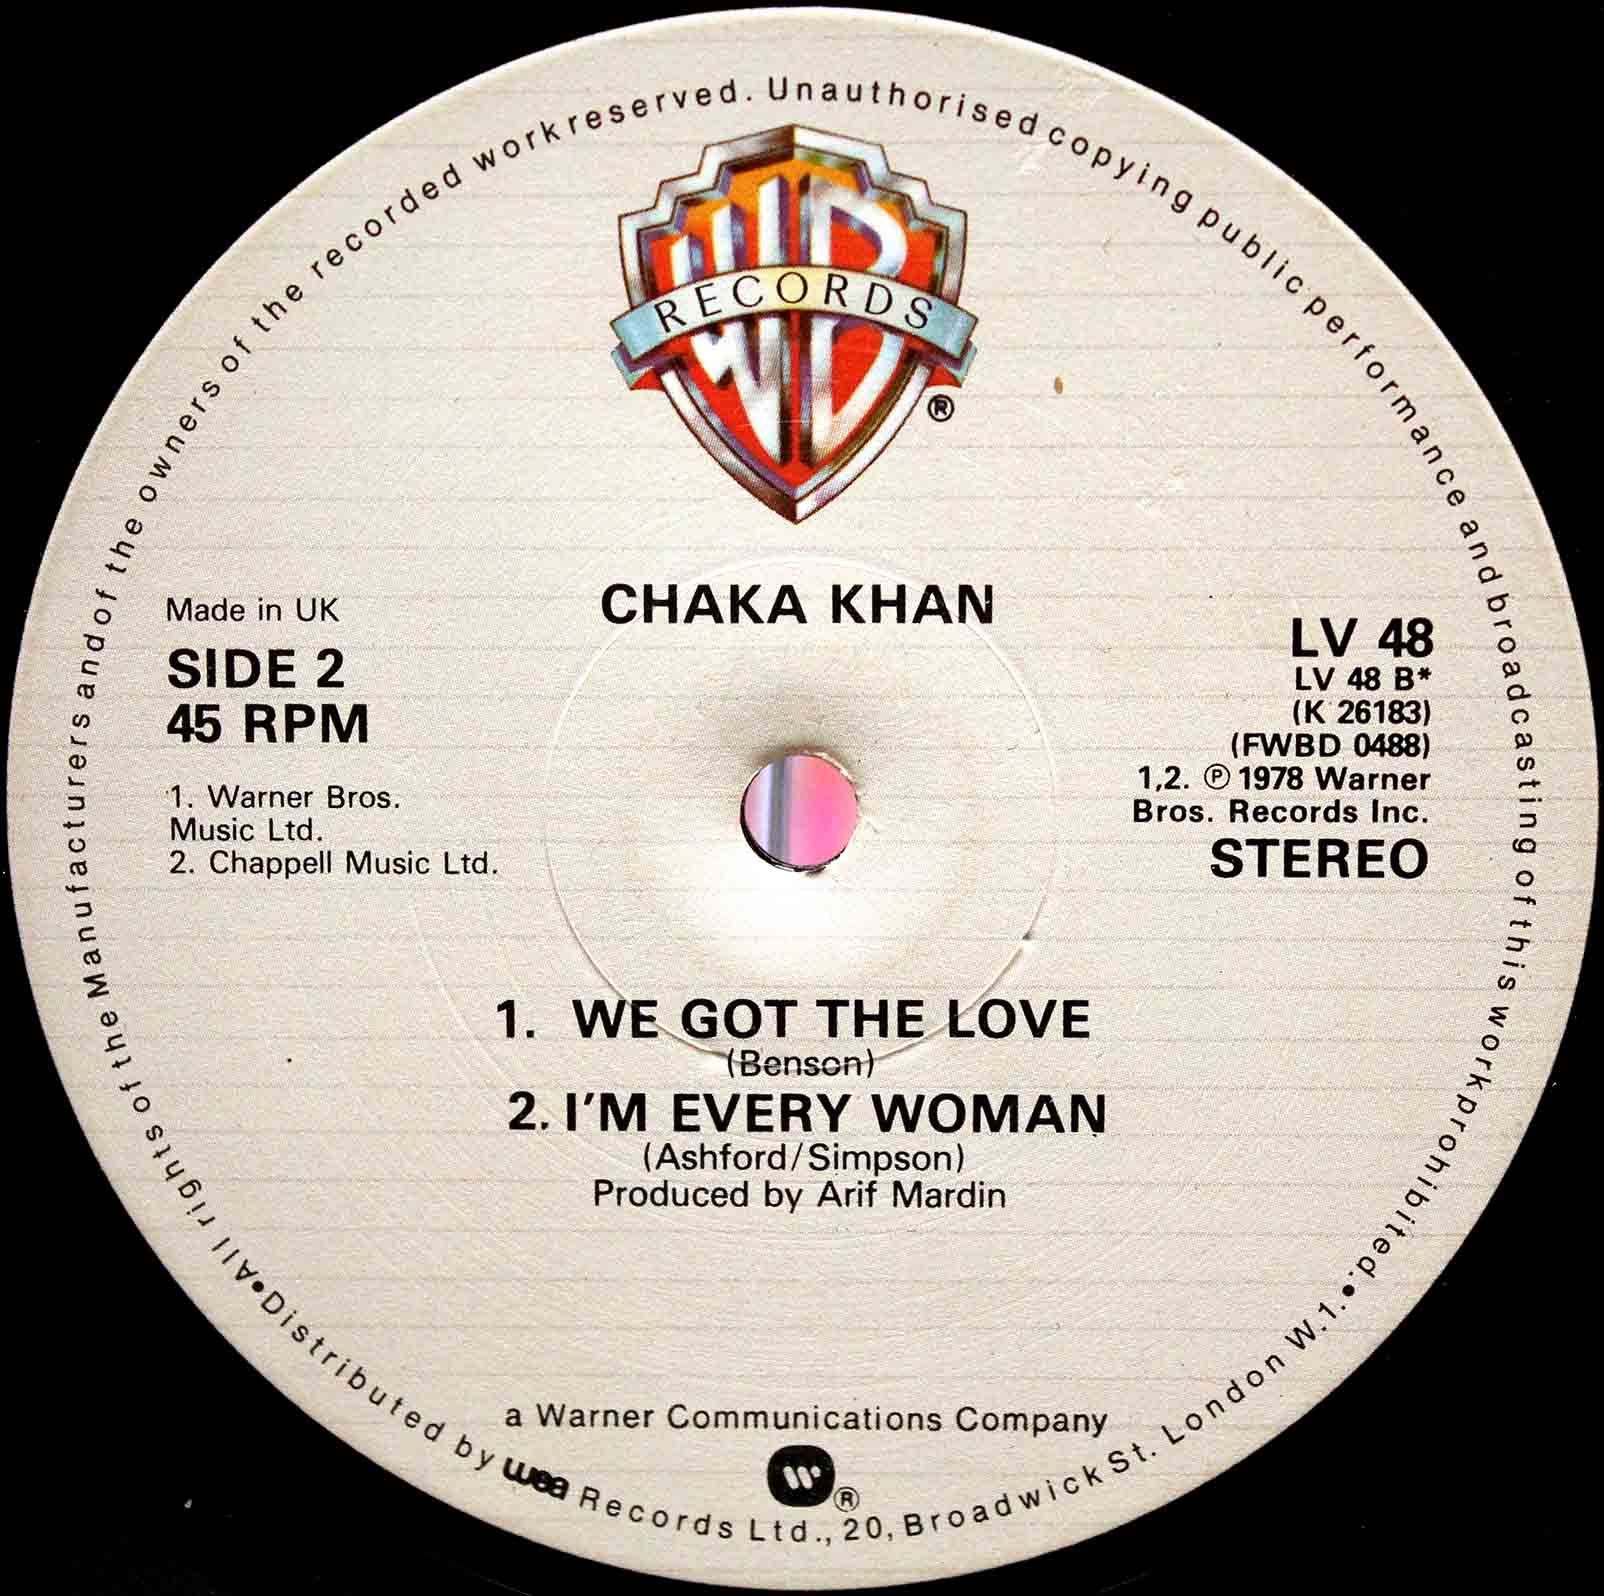 Chaka Khan - What Cha Gonna Do For Me 04